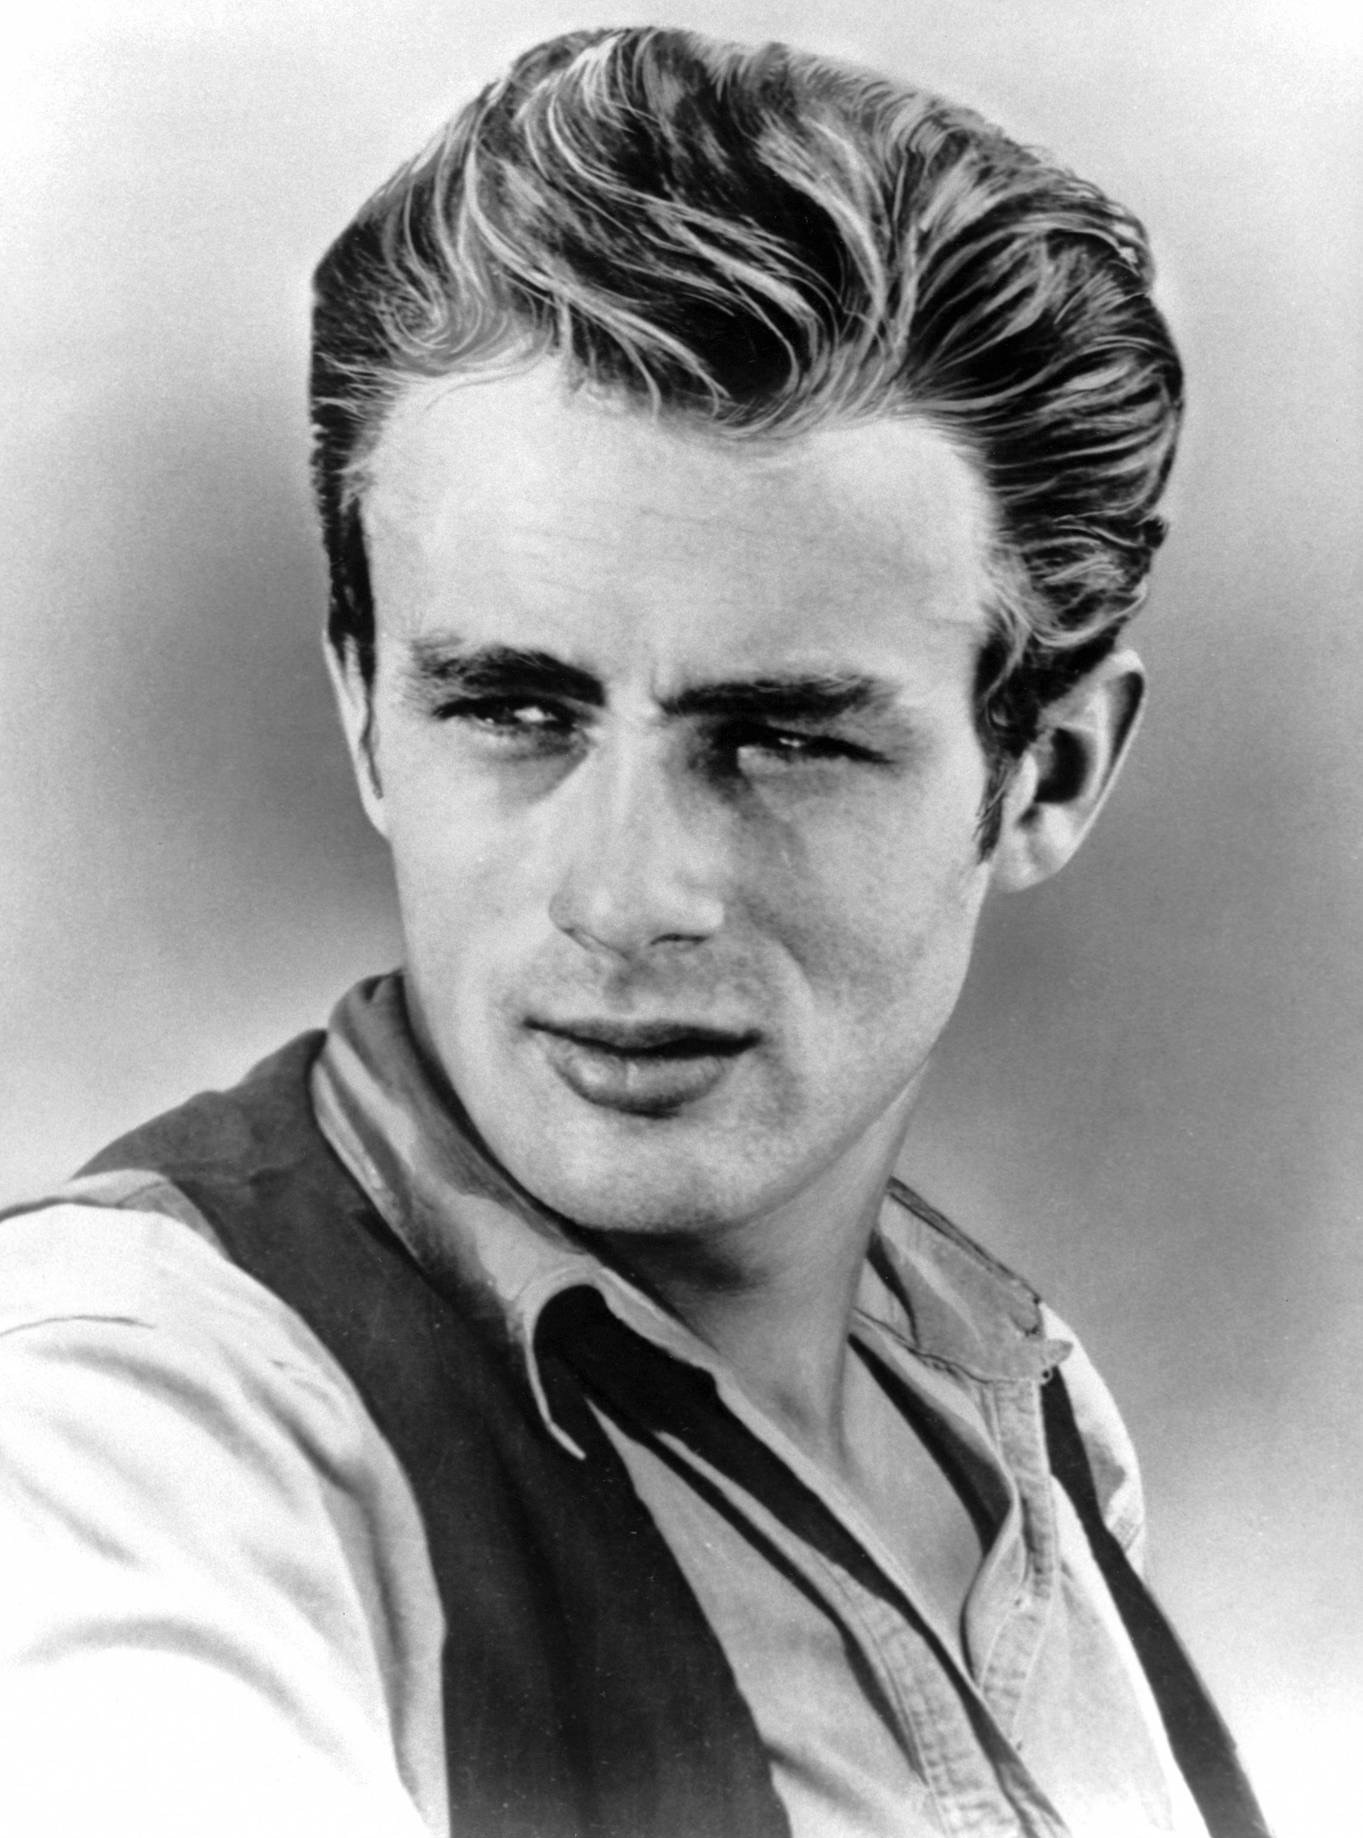 James Dean Hairstyle